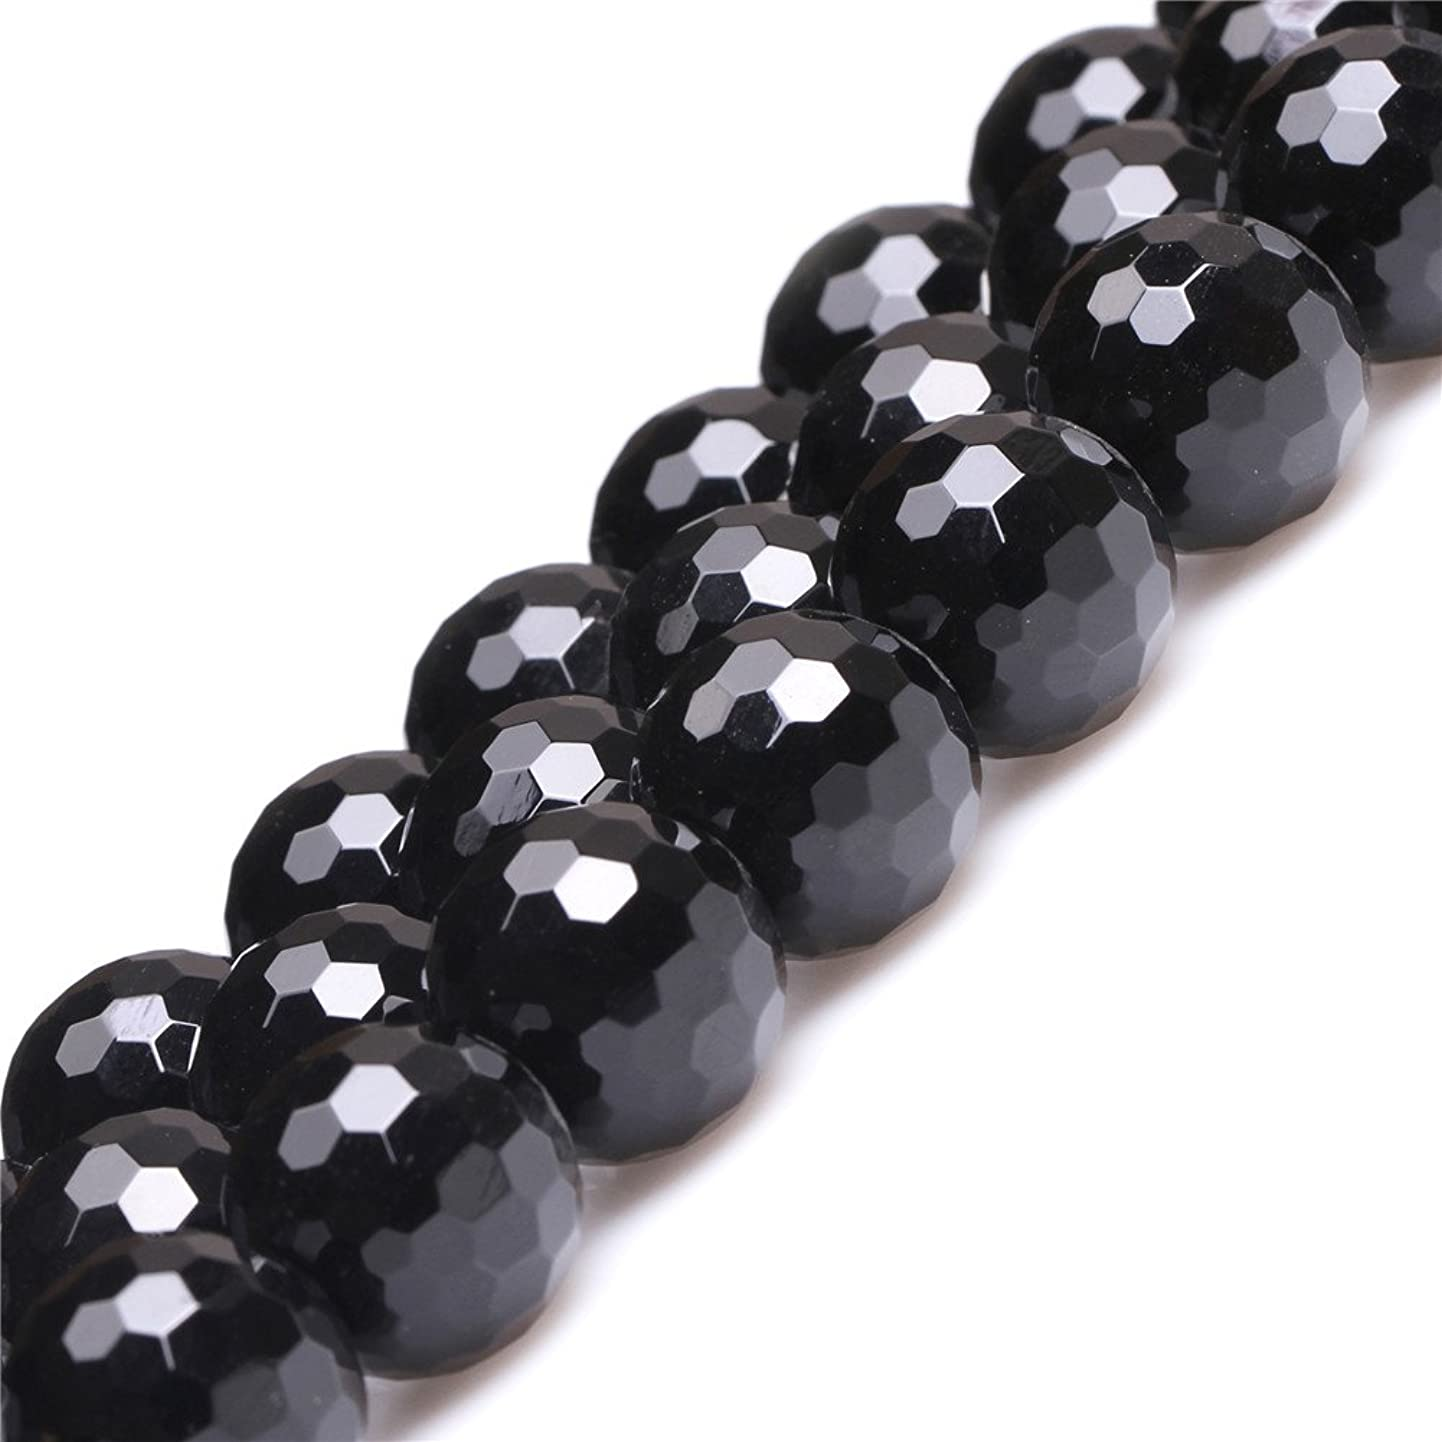 JOE FOREMAN 18mm Black Agate Semi Precious Gemstone Round Faceted Loose Beads for Jewelry Making DIY Handmade Craft Supplies 15